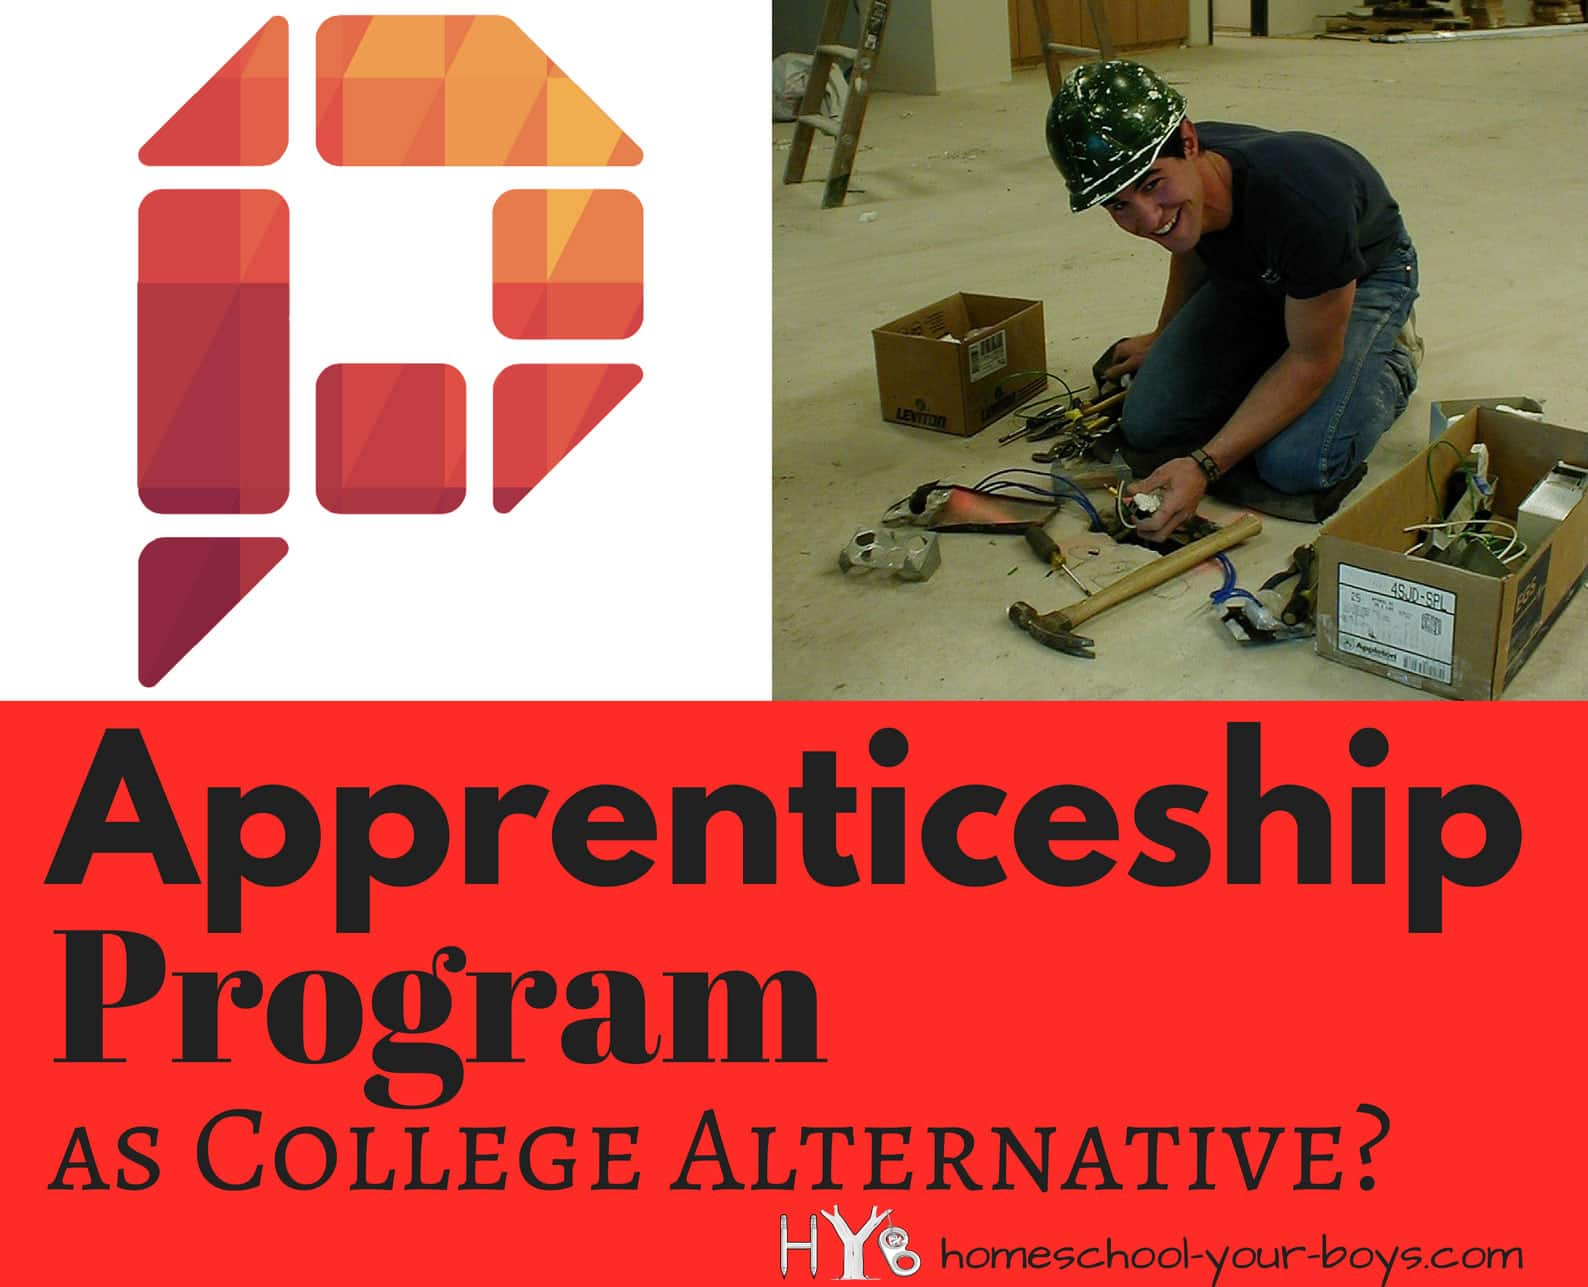 Apprenticeship Program as College Alternative? - Contrary to popular believe, college may not be the best option for all students. This apprenticeship program is a great college alternative. Check it out!